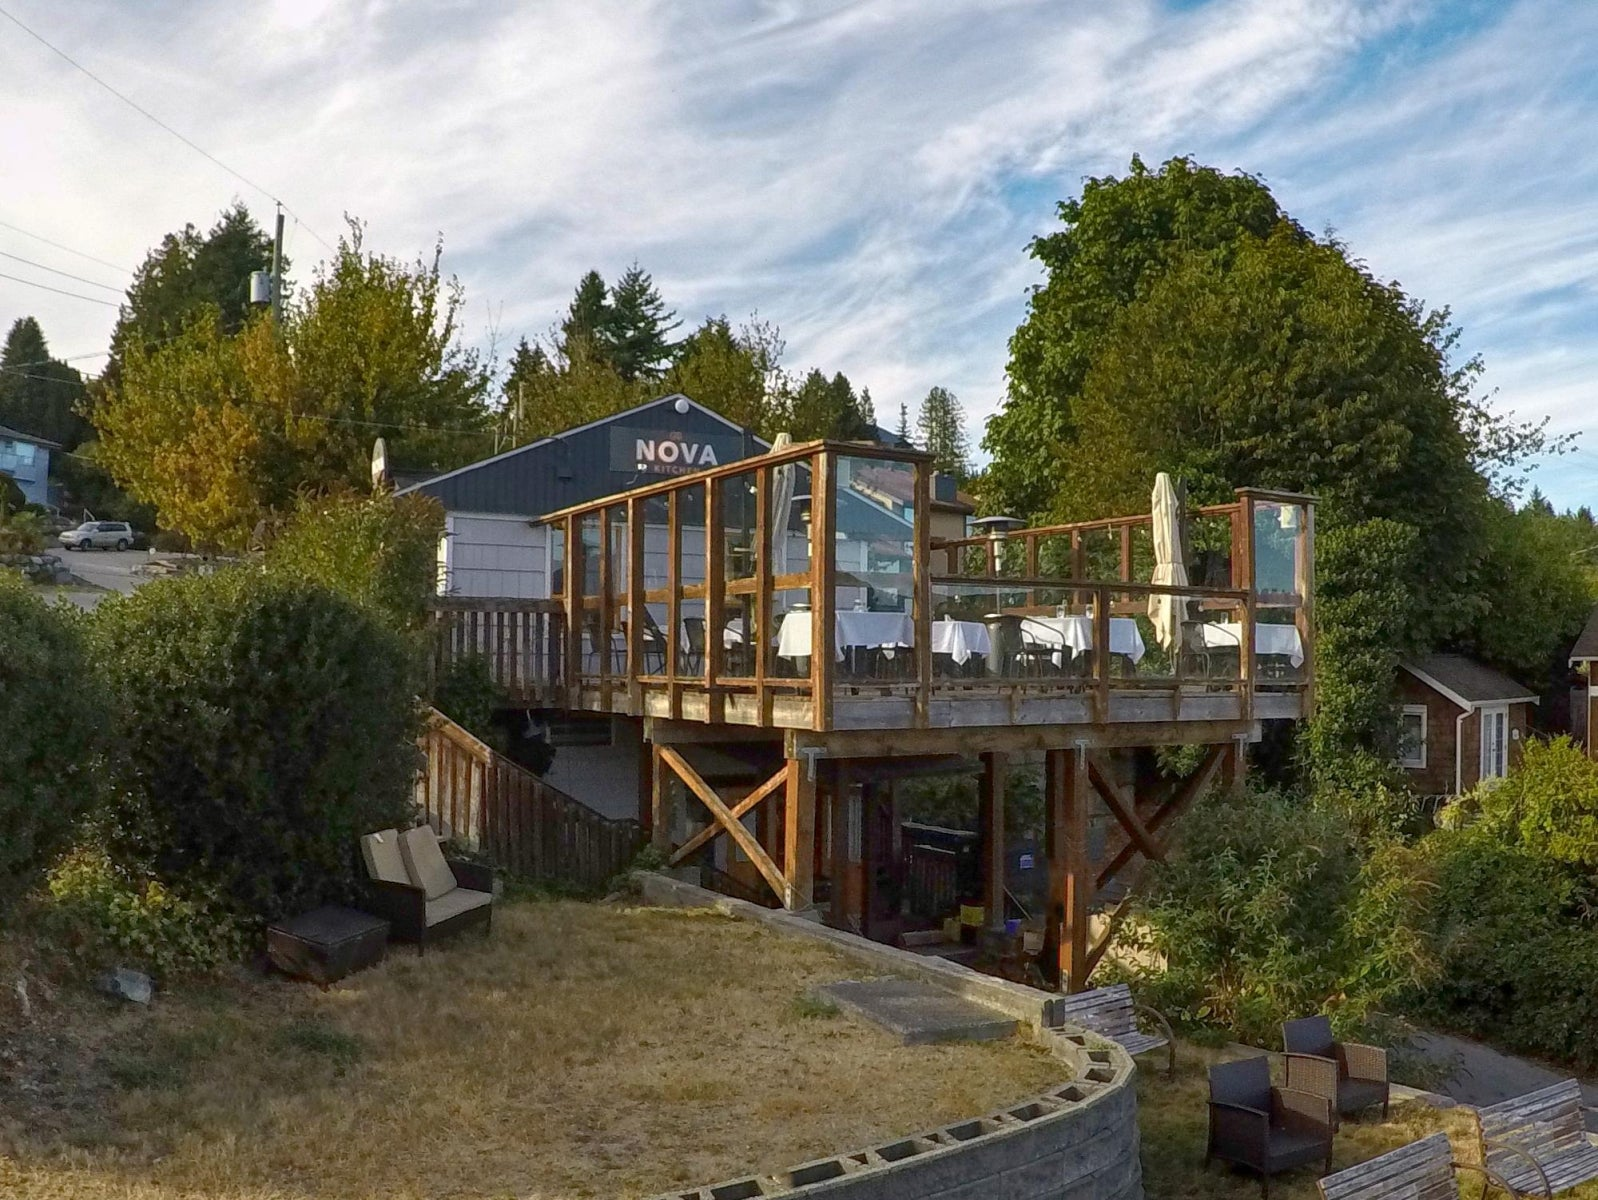 The Nova Kitchen 546 Gibsons Way, Gibsons BC V0N1V9 - Gibsons & Area COMM for sale(C8014726) #21